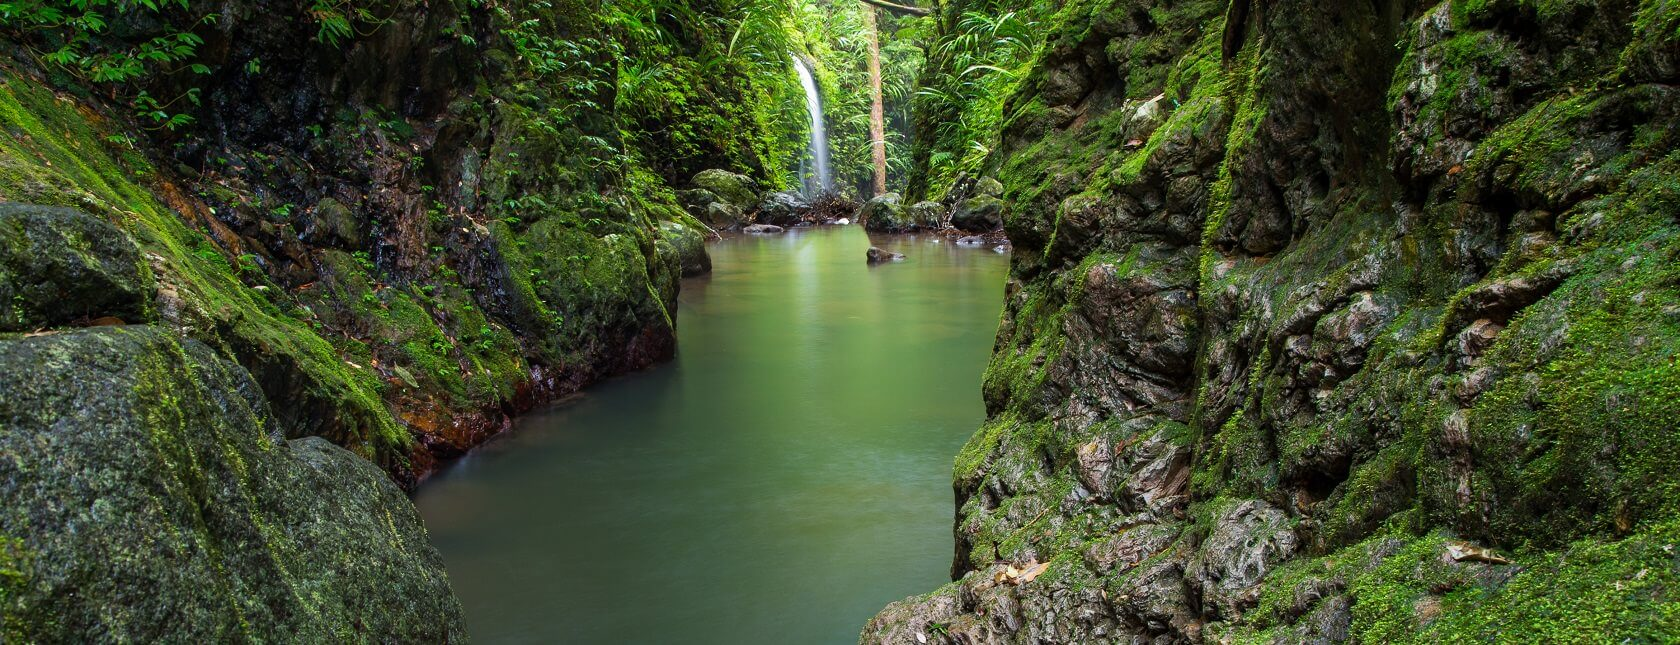 10 reasons why the locals love Lamington National Park